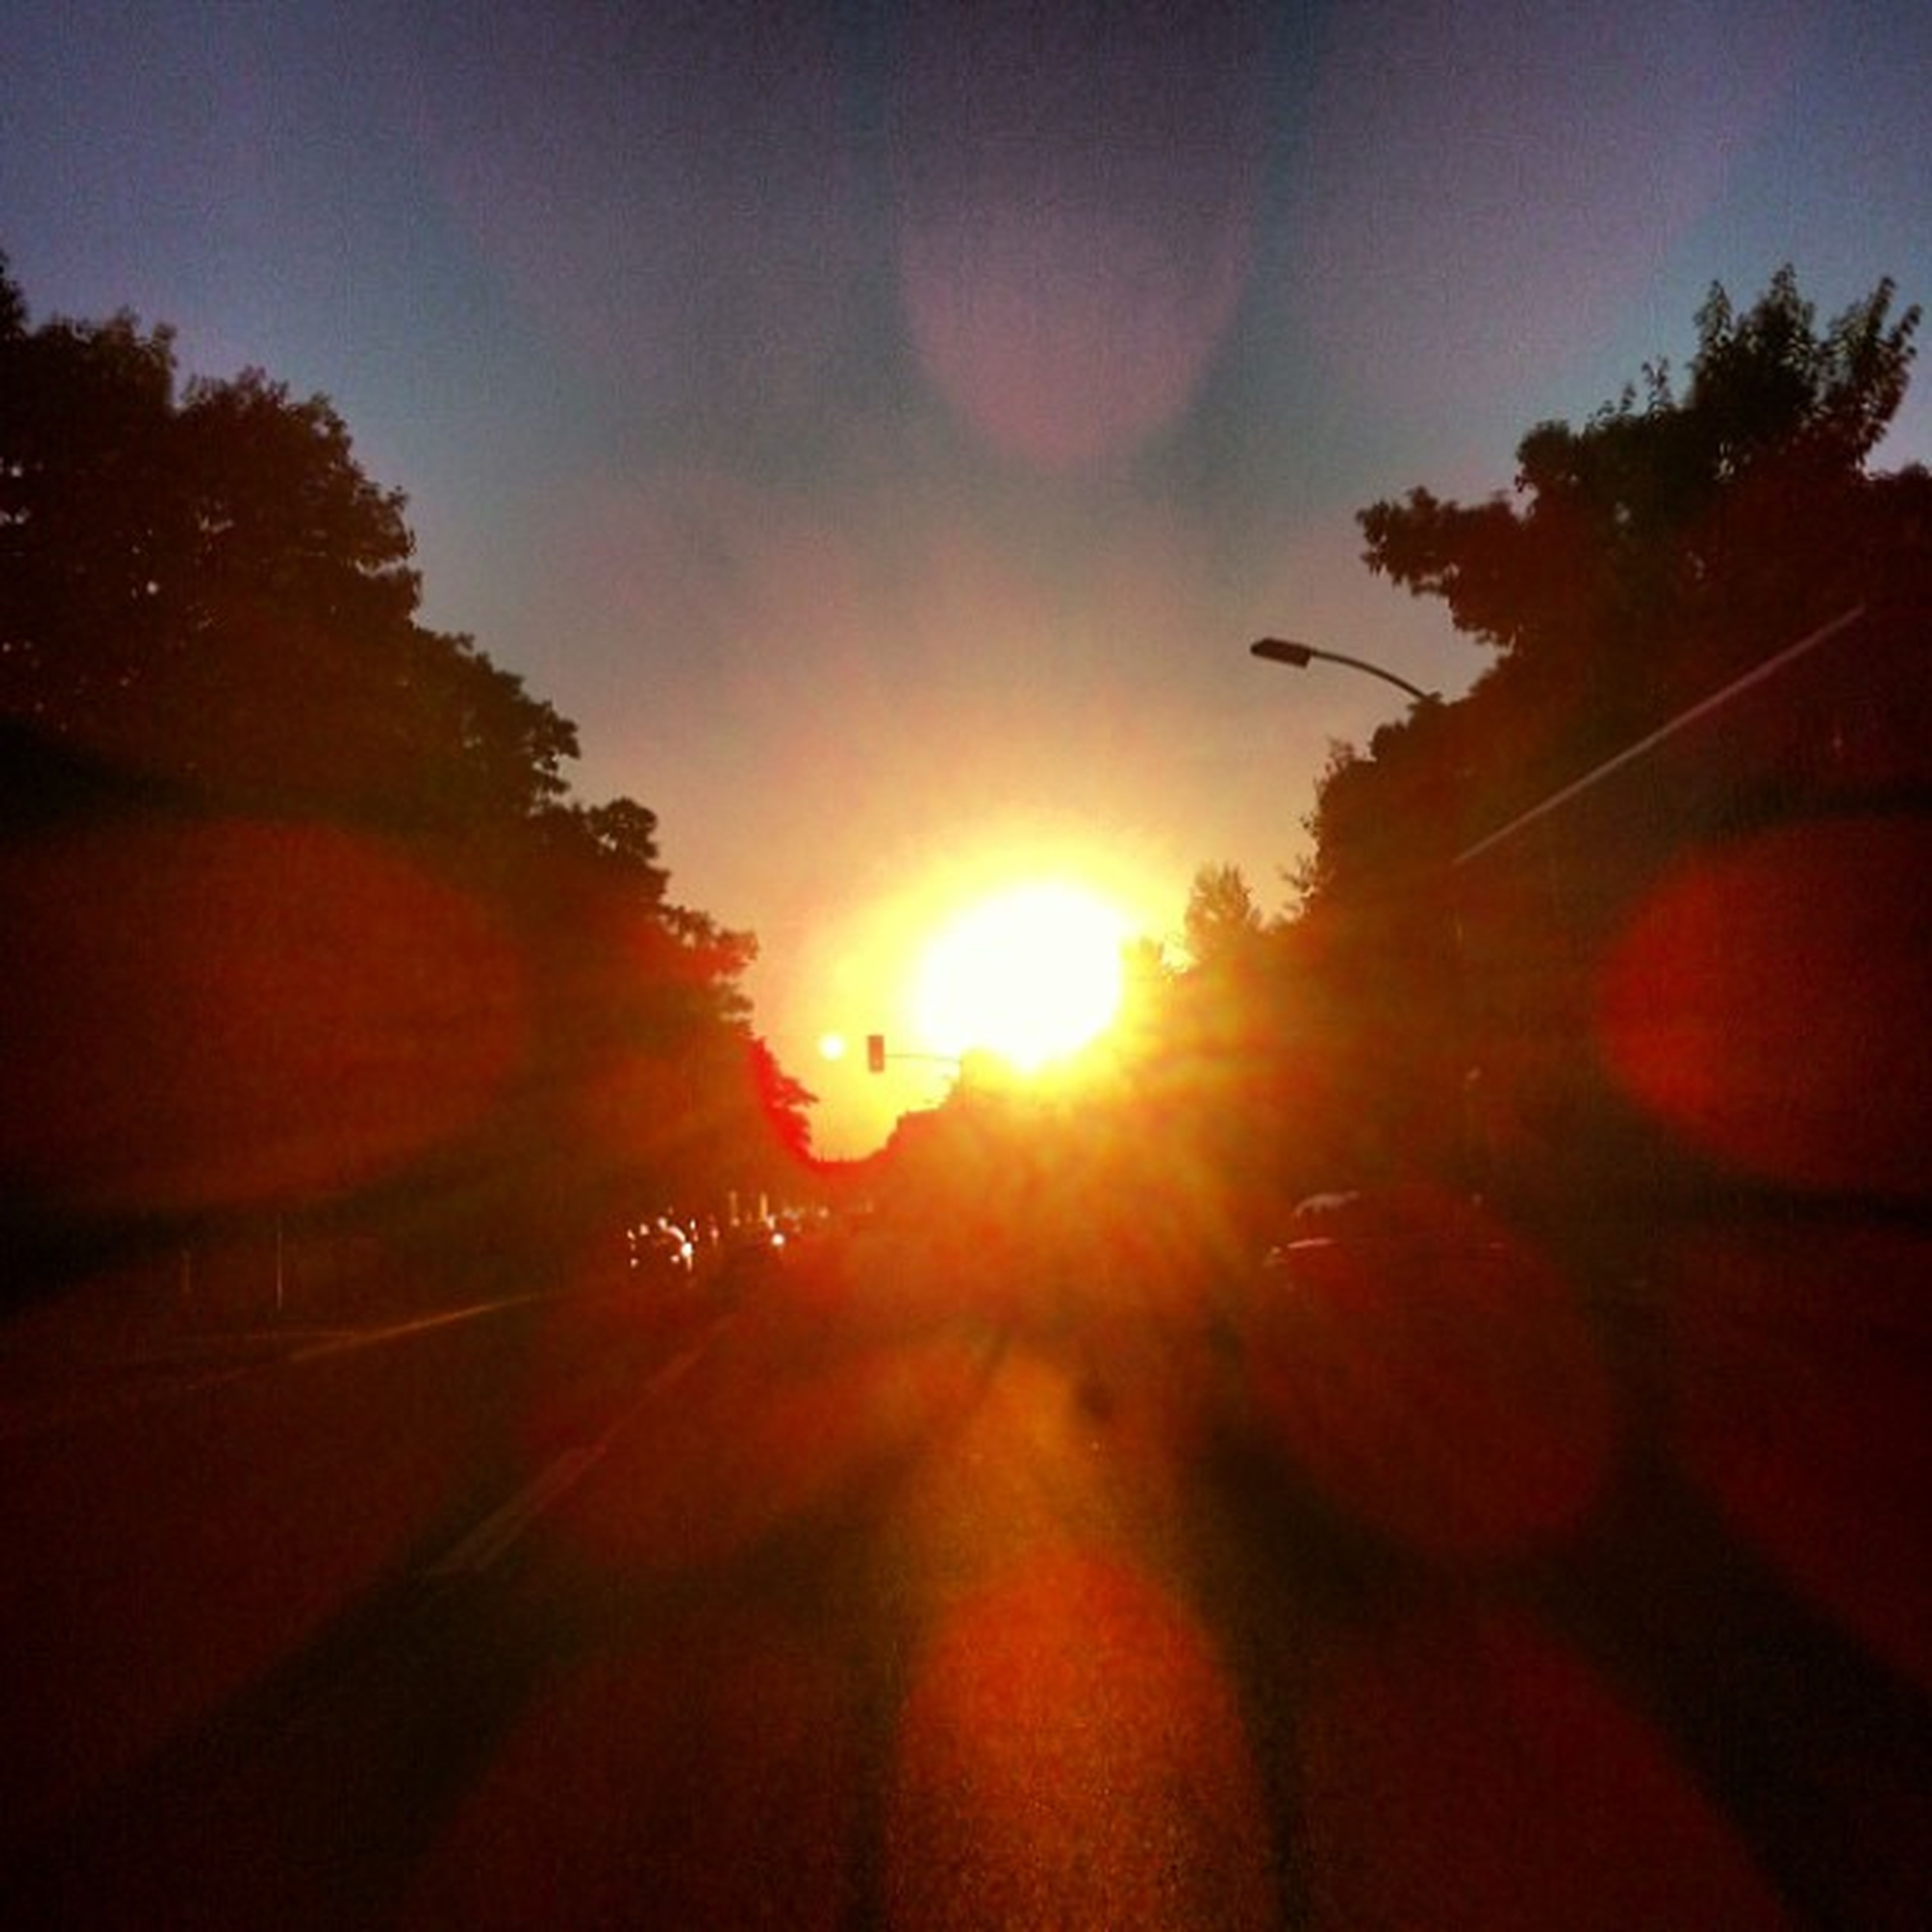 sun, sunset, tree, lens flare, sunbeam, sunlight, transportation, silhouette, orange color, sky, nature, road, tranquility, car, no people, beauty in nature, outdoors, tranquil scene, clear sky, scenics